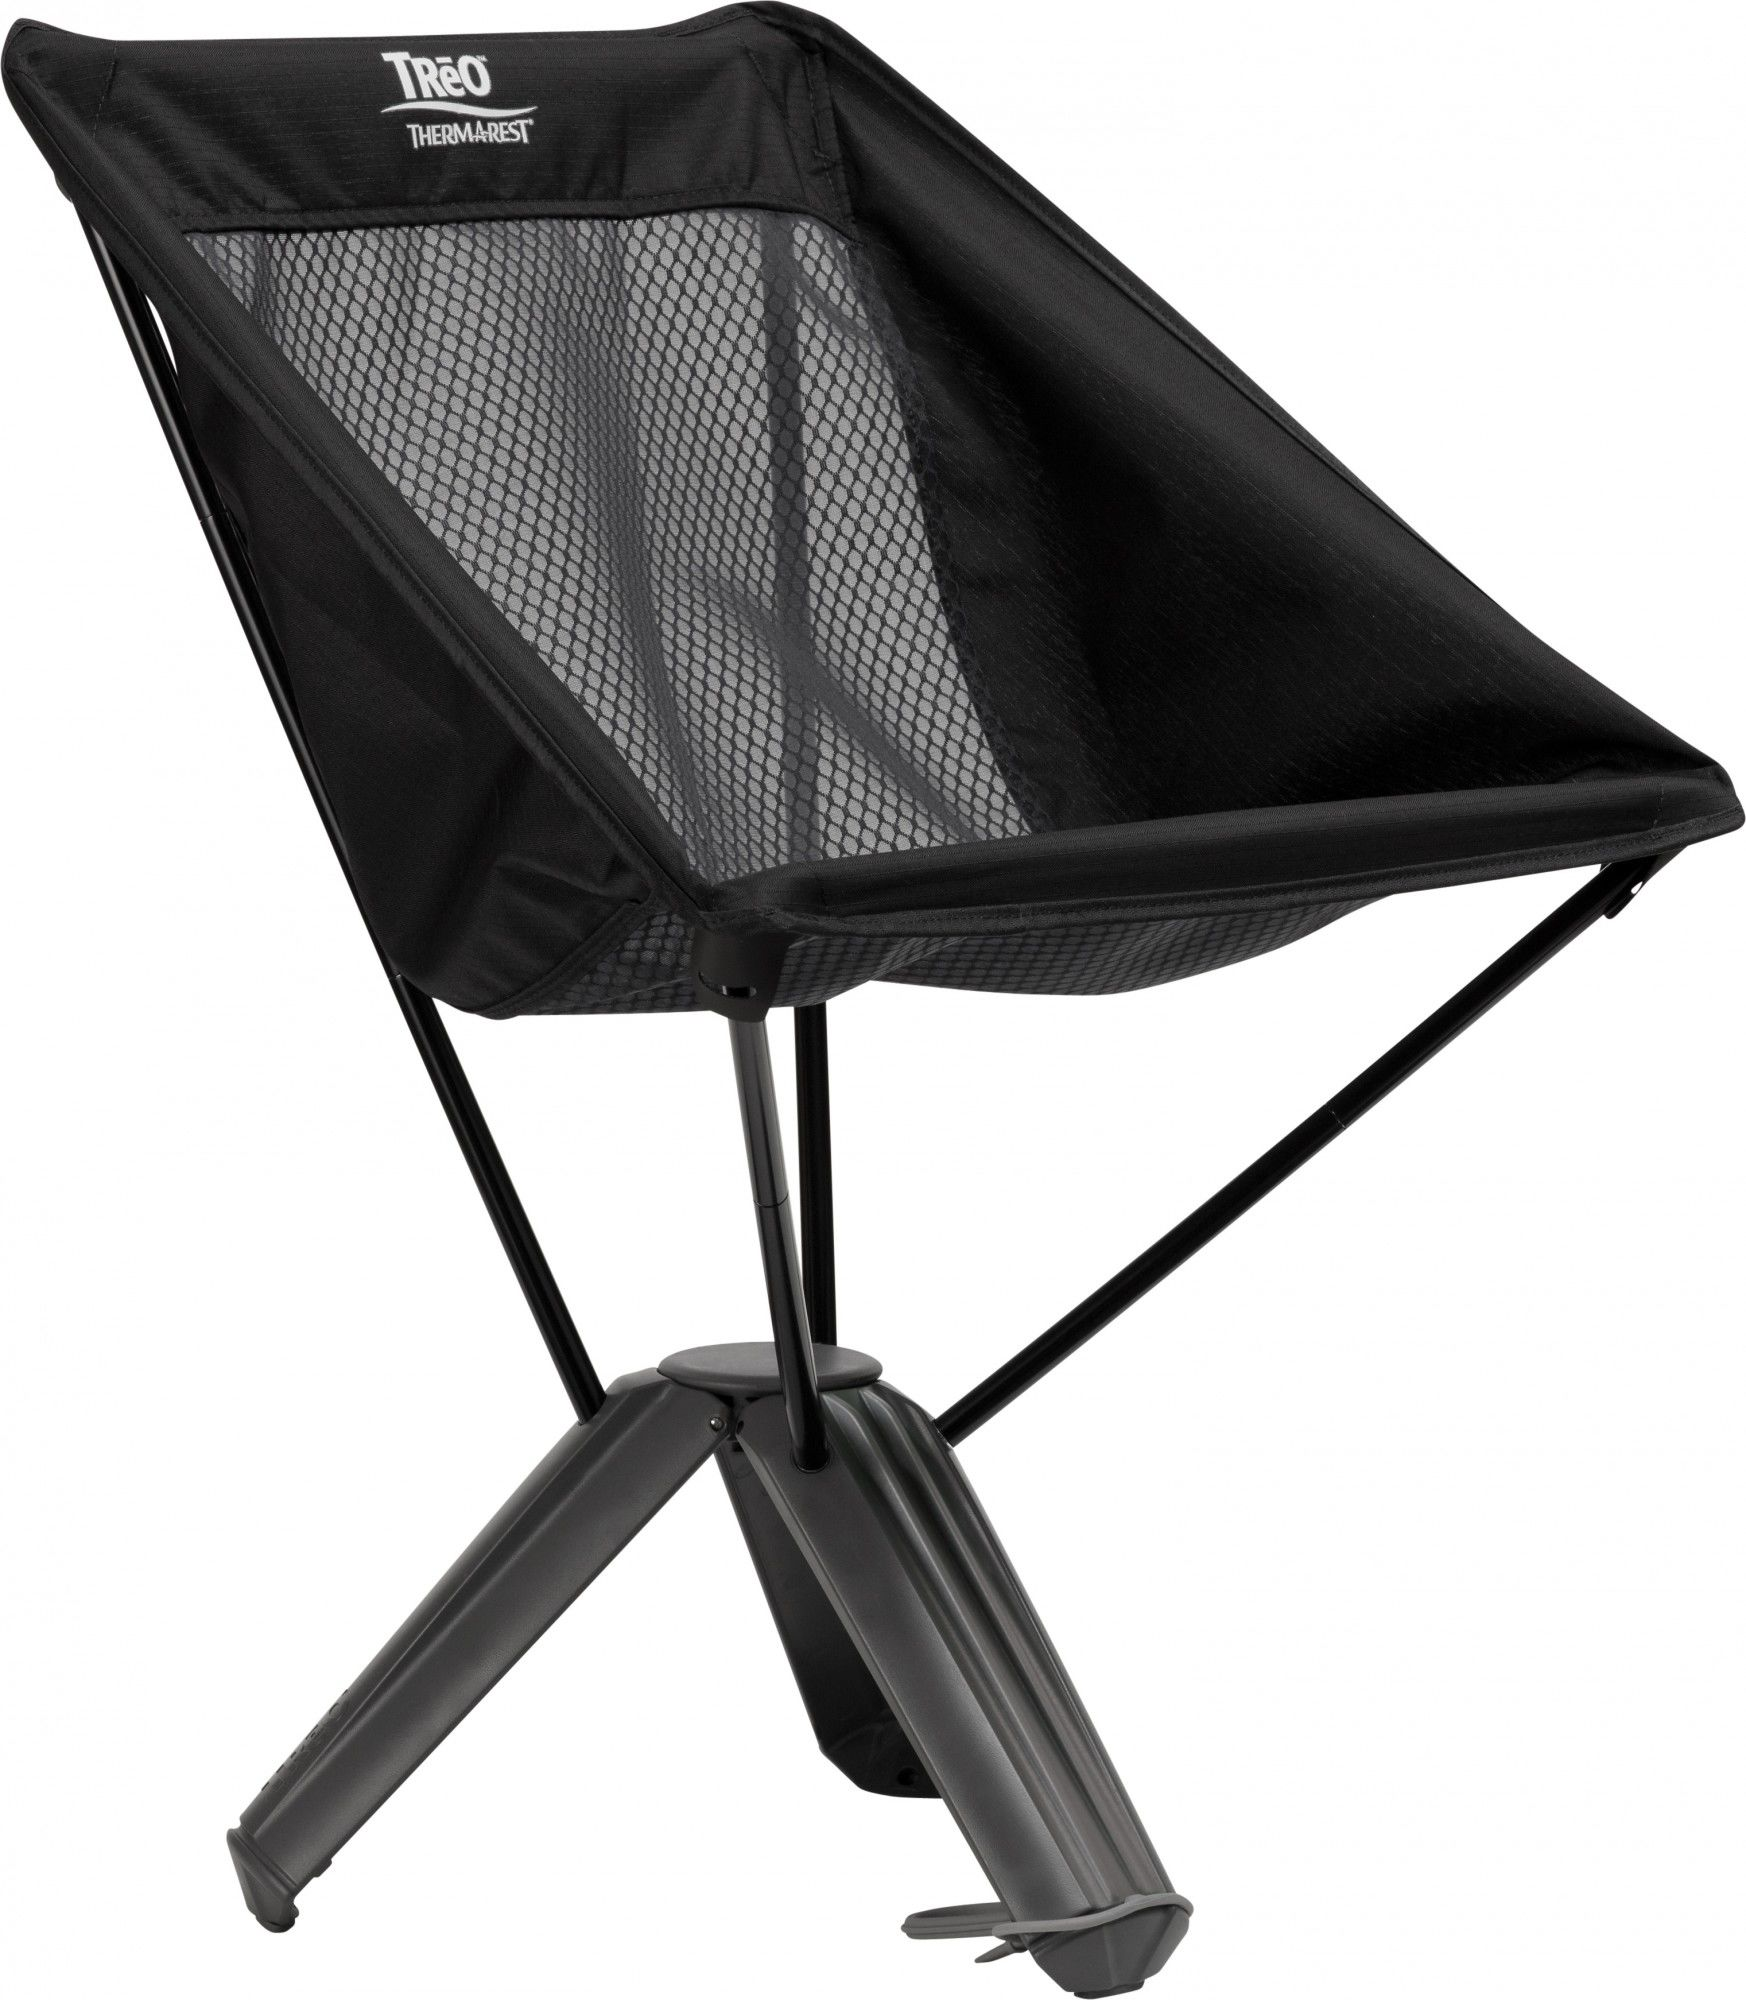 Therm-a-Rest Treo Chair Schwarz, One Size -Farbe Black Mesh, One Size